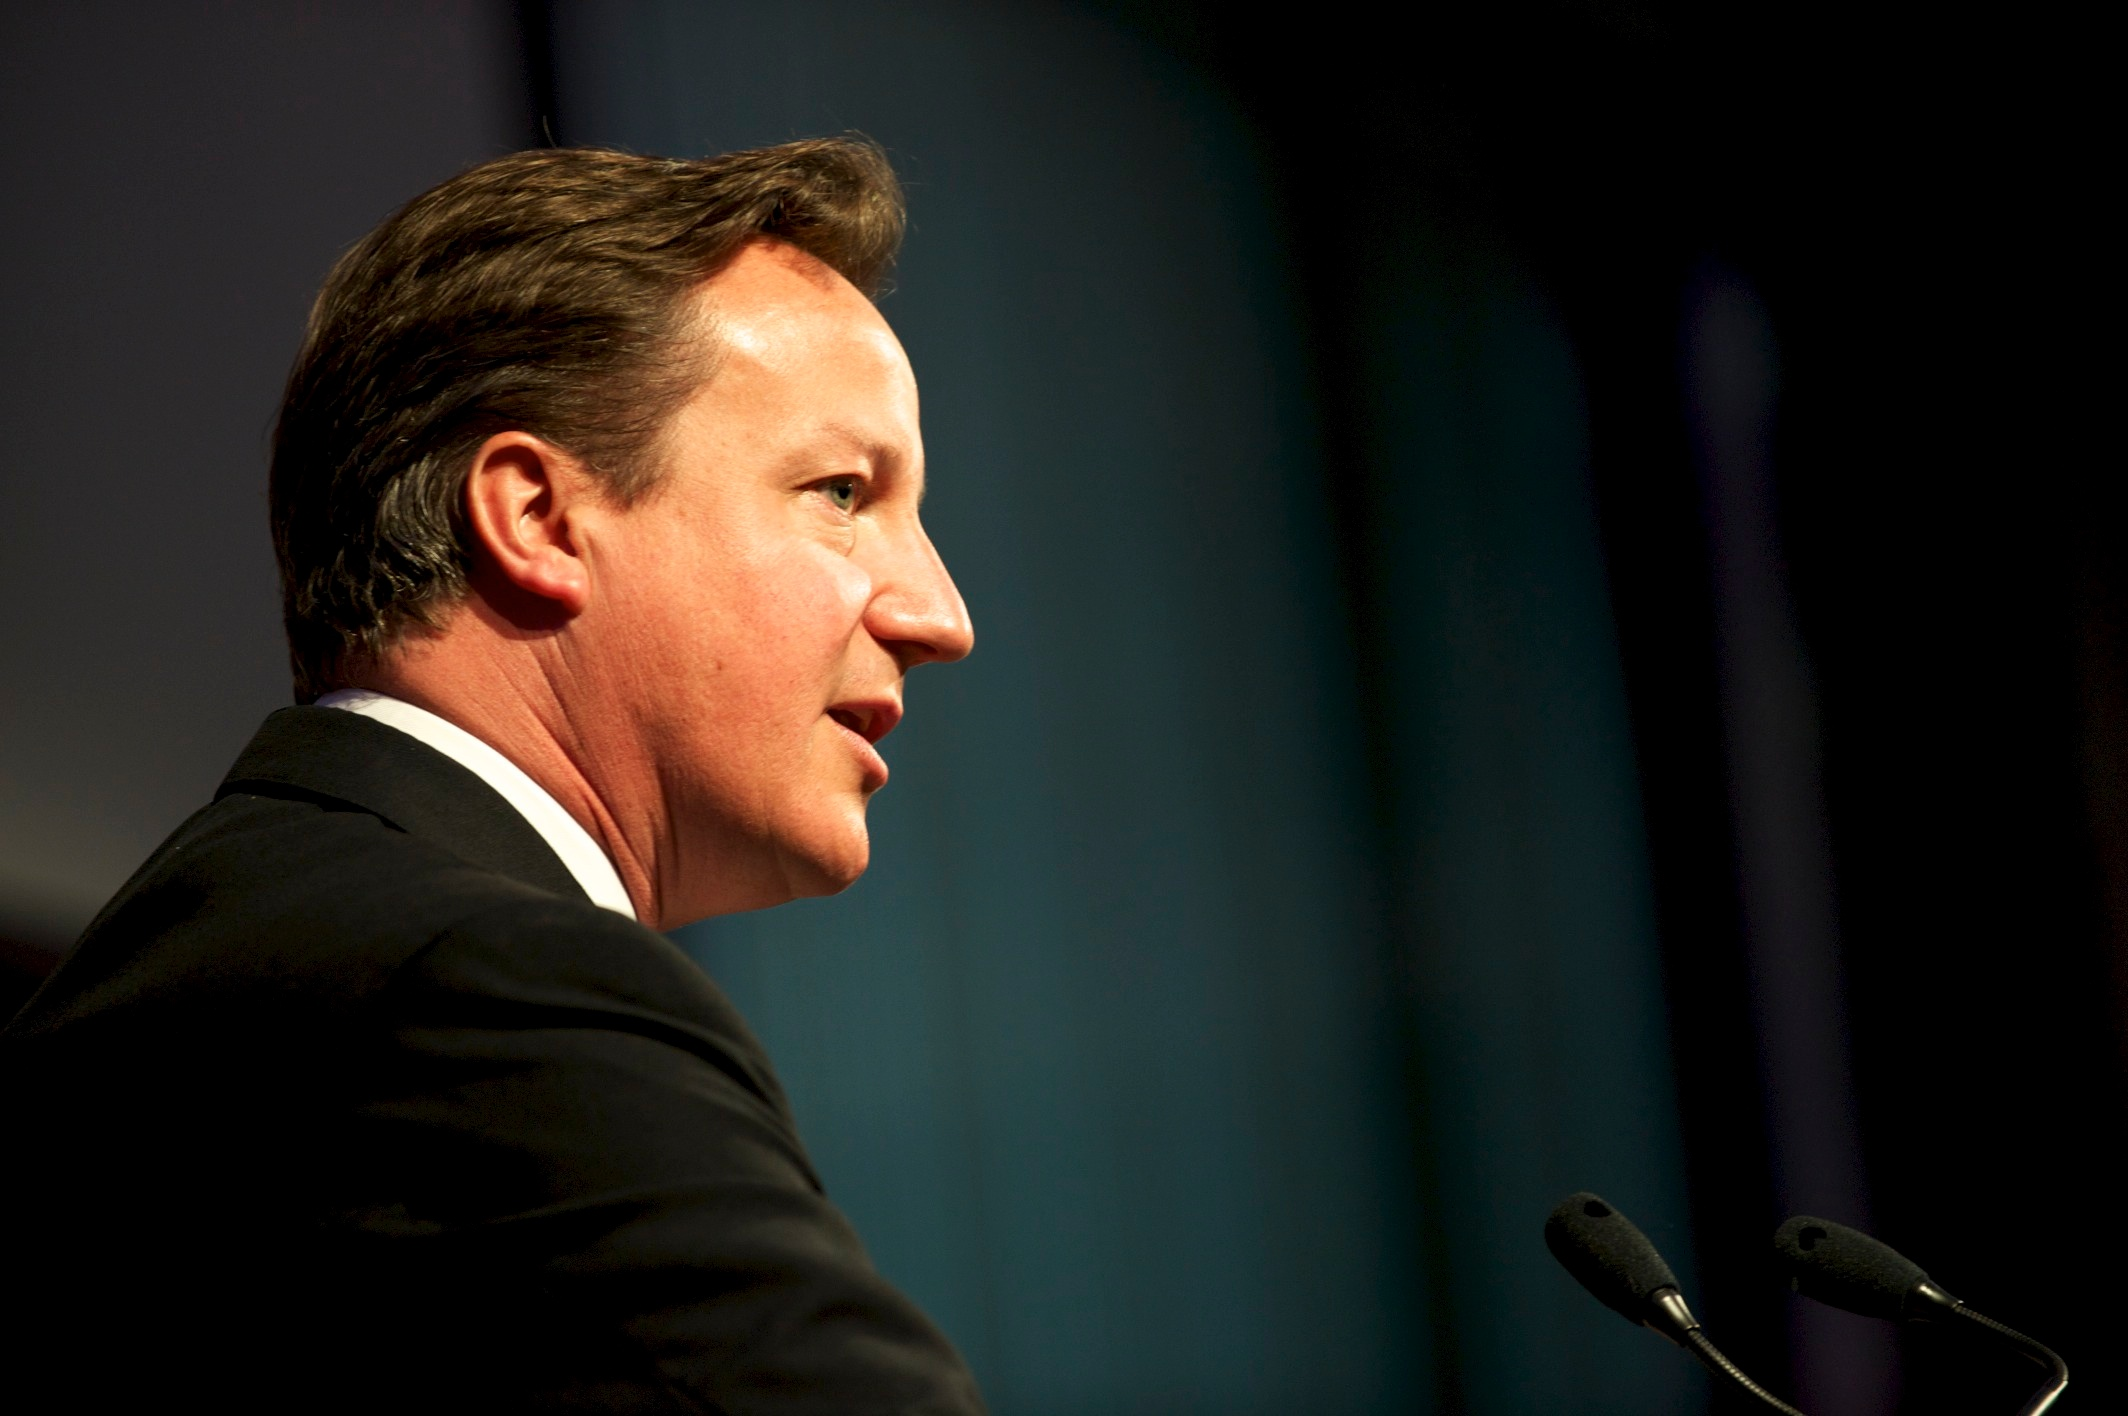 Prime minister David Cameron lifts lid on scheme to create British Mittelstand